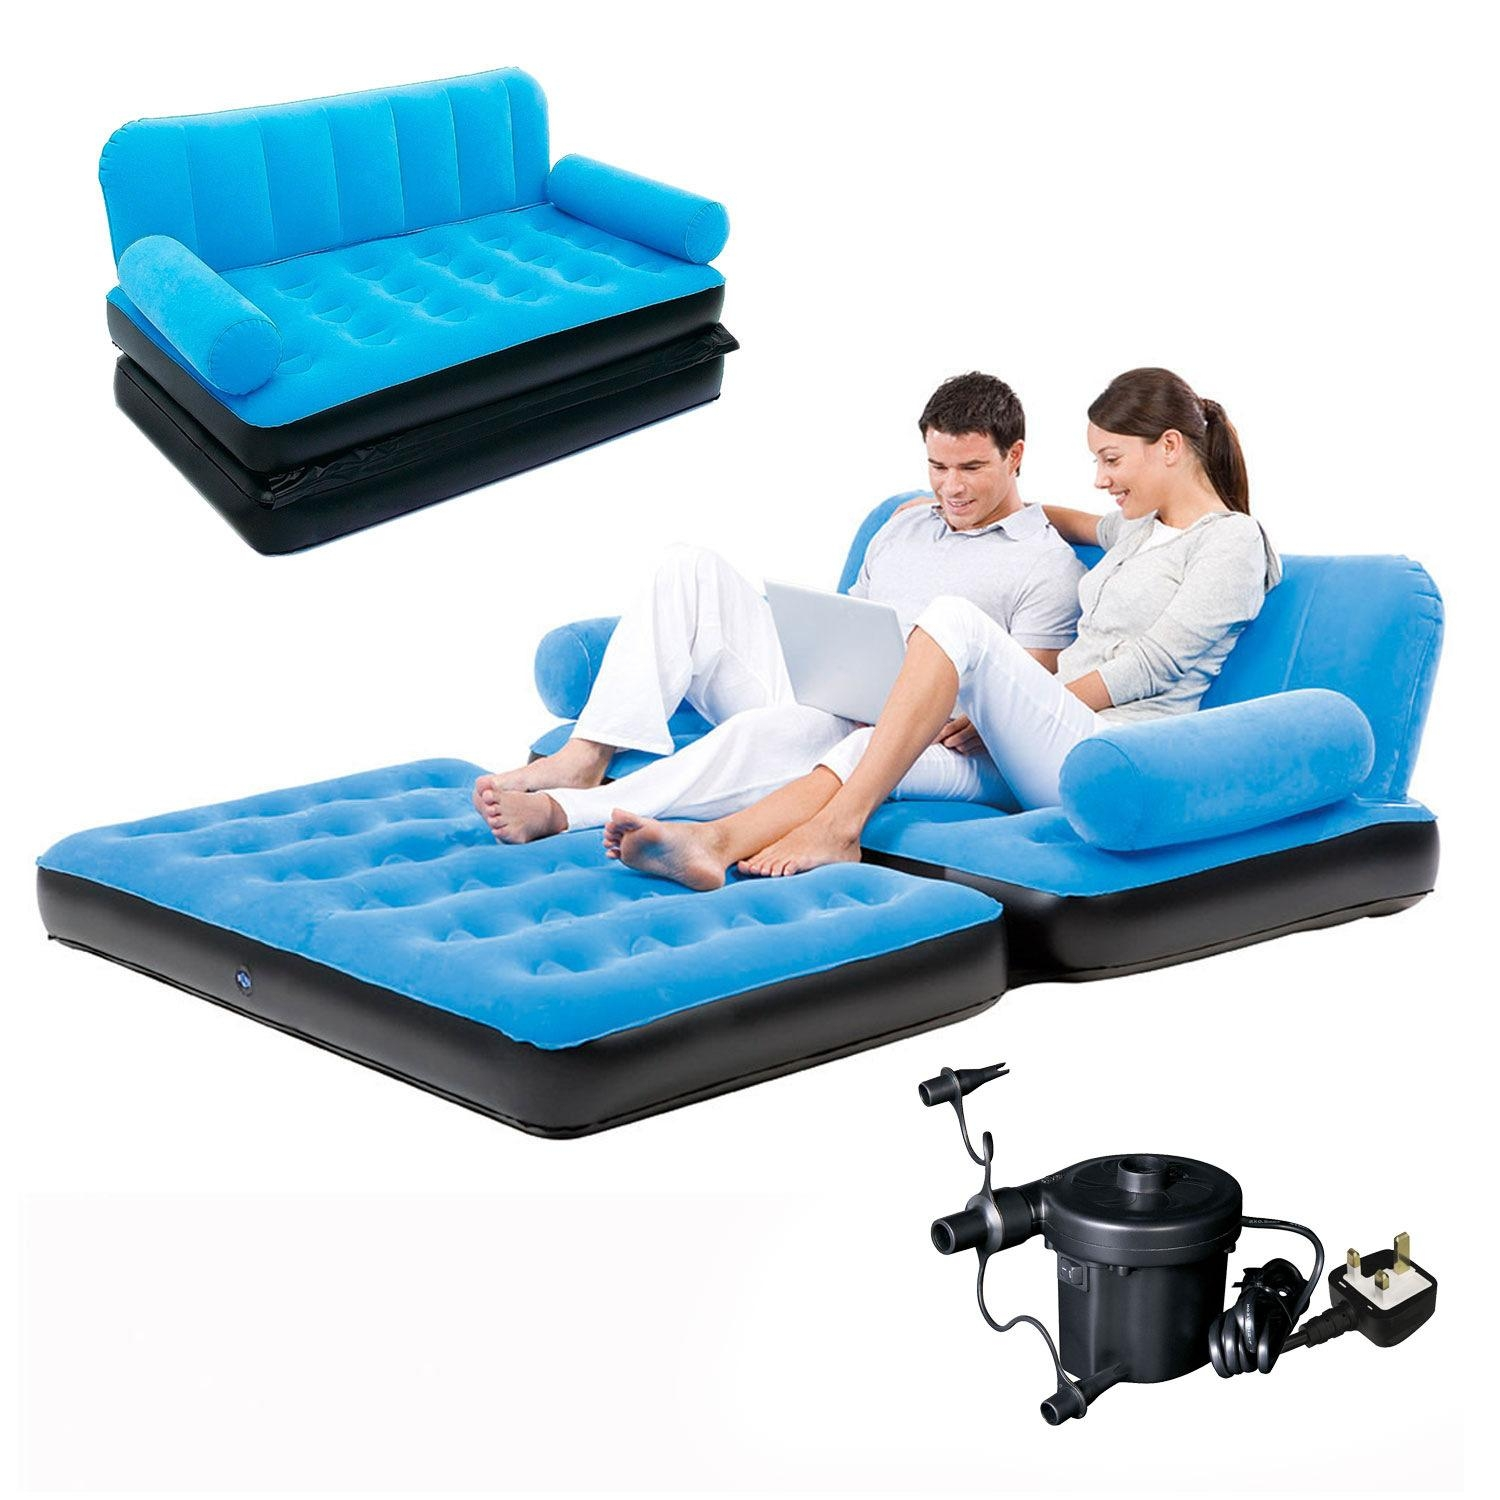 Inflatable Sofa Bed | Roselawnlutheran With Regard To Intex Air Couches (View 12 of 20)